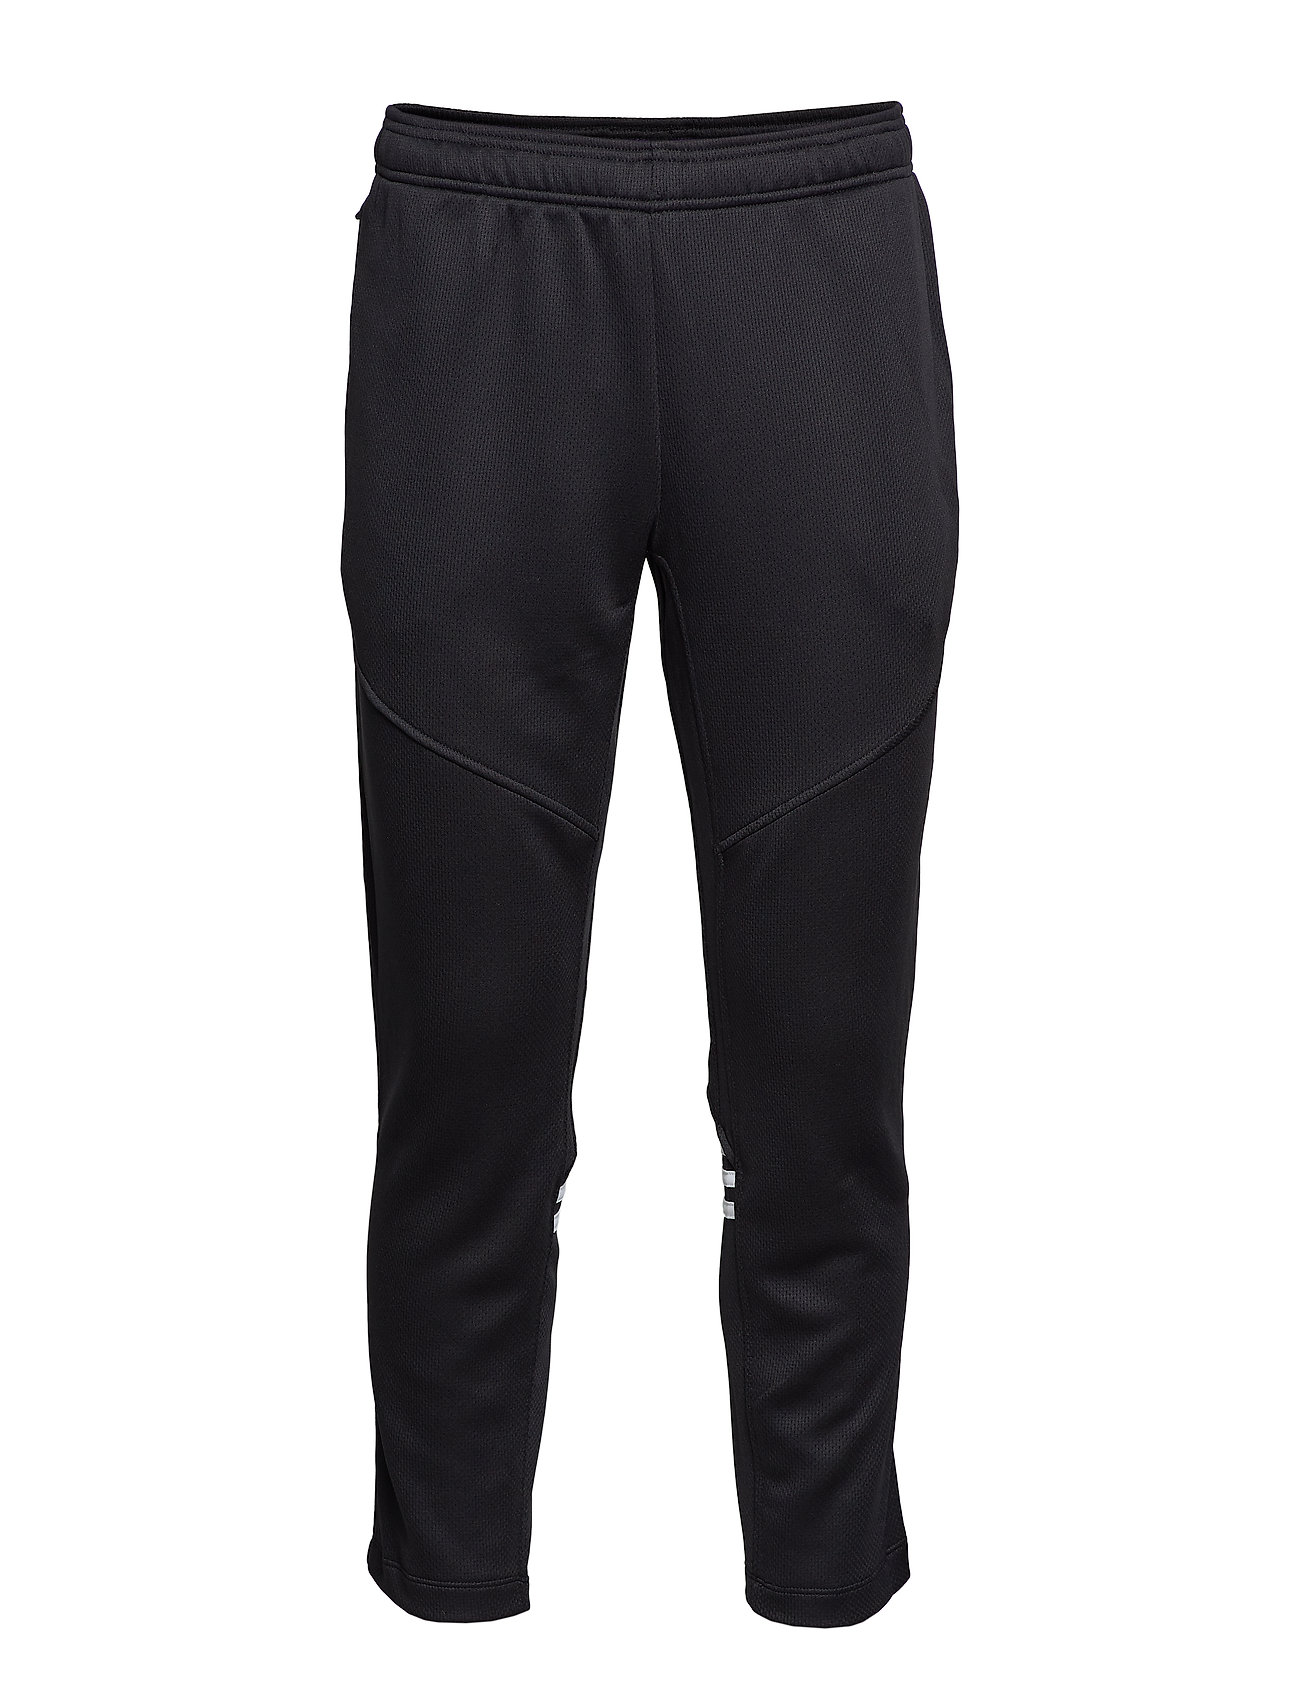 adidas Performance DAILY 3S PANT - BLACK